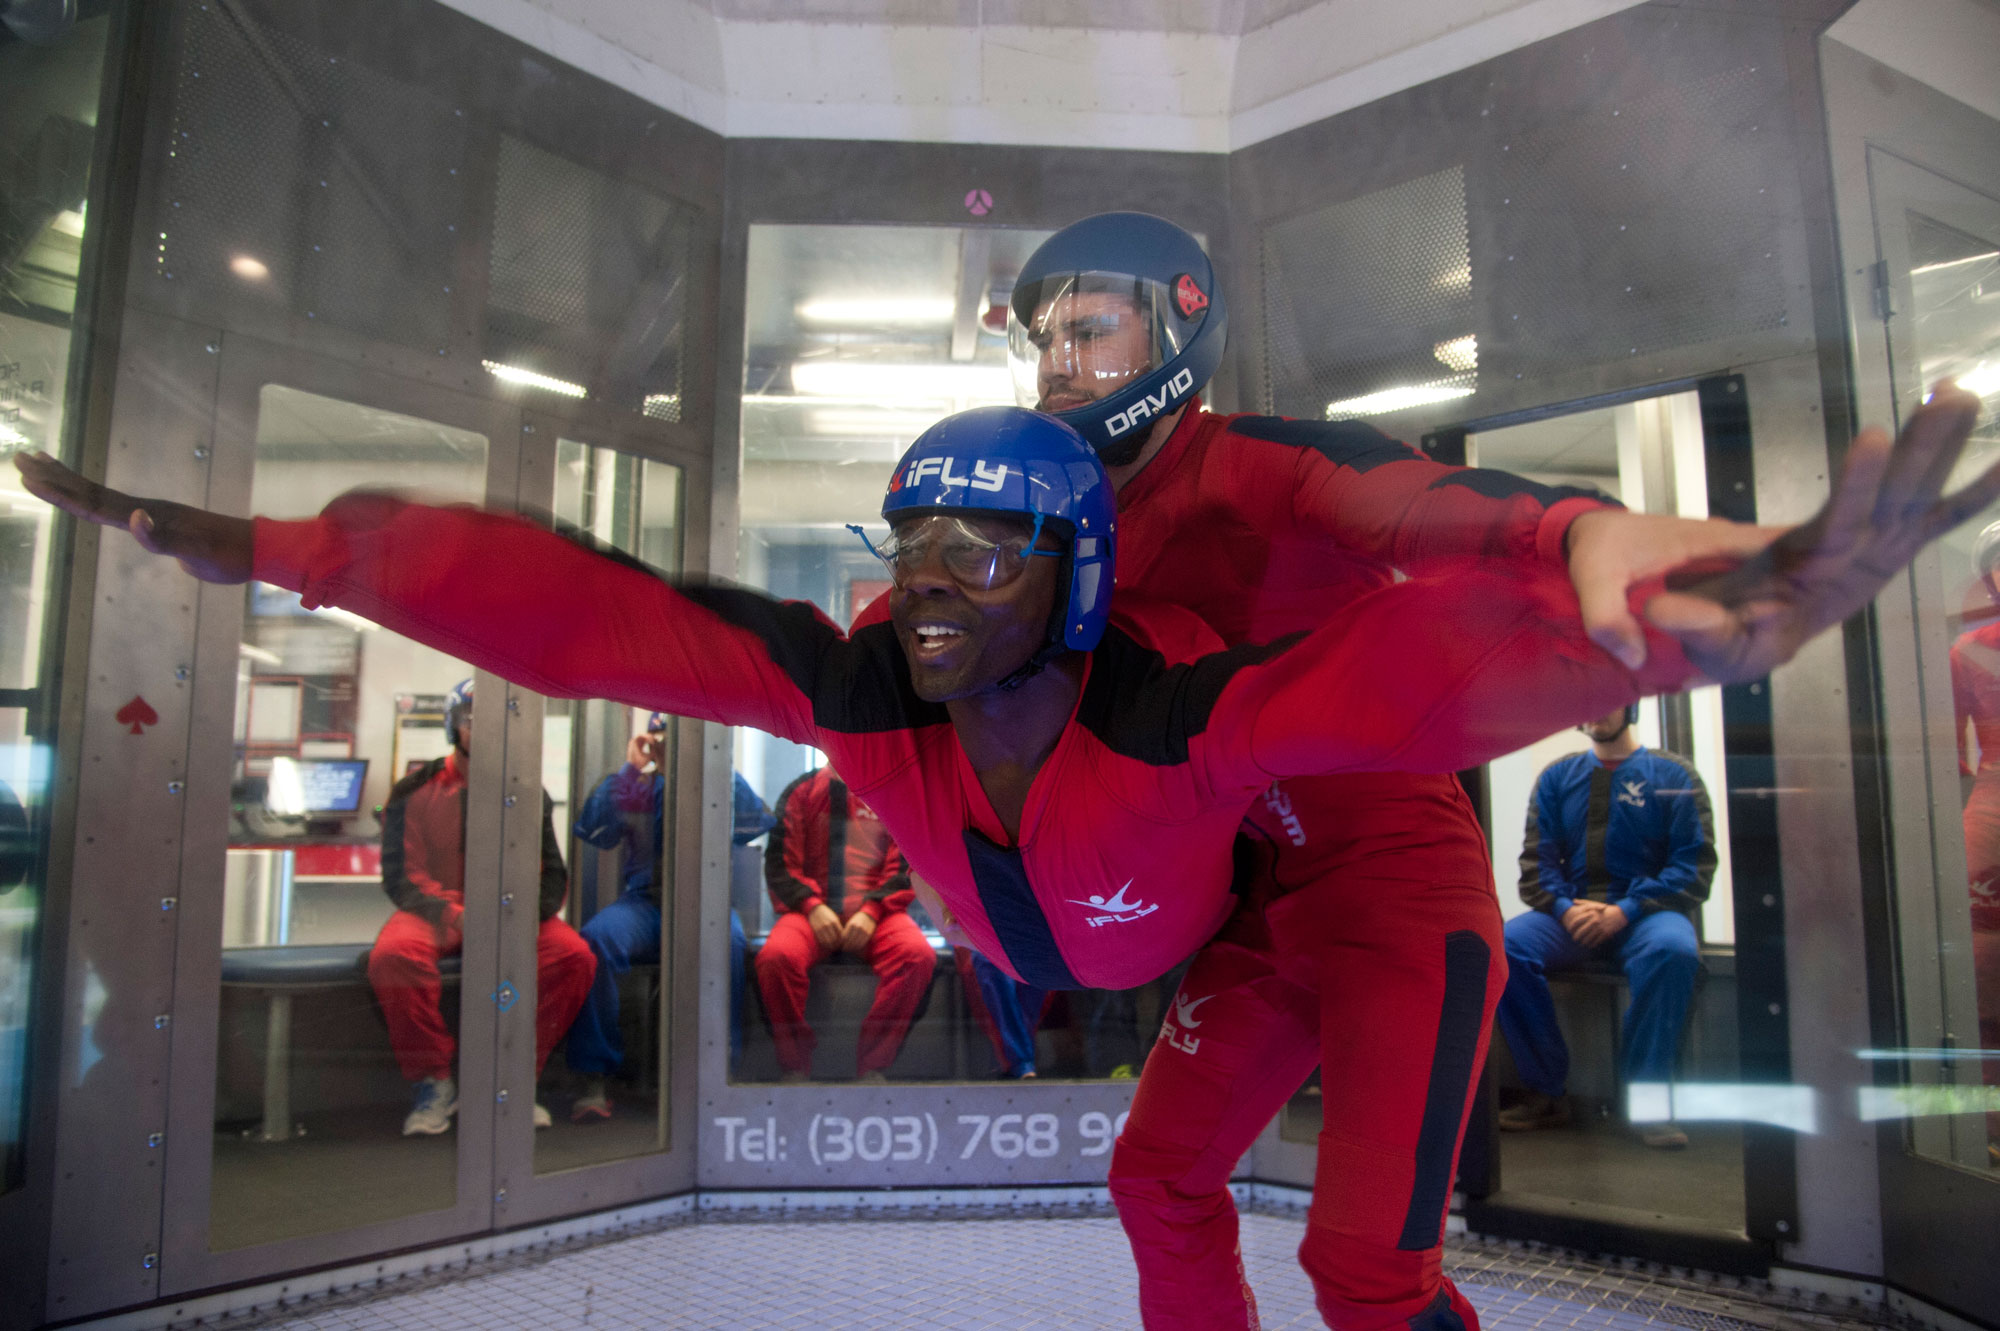 (U.S. Air Force photo by Senior Airman Tiffany DeNault) DENVER, Colo. – Senior Airman JoJuan Green, 21st Operations Support Squadron weapons and tactics, flies in the wind tunnel at IFly Indoor Skydiving during a Peterson Chapel retreat, June 19, 2015. Peterson leadership picked their top performers to participate in a day retreat to indoor skydive, eat lunch and discuss the stress of military life and resources available.